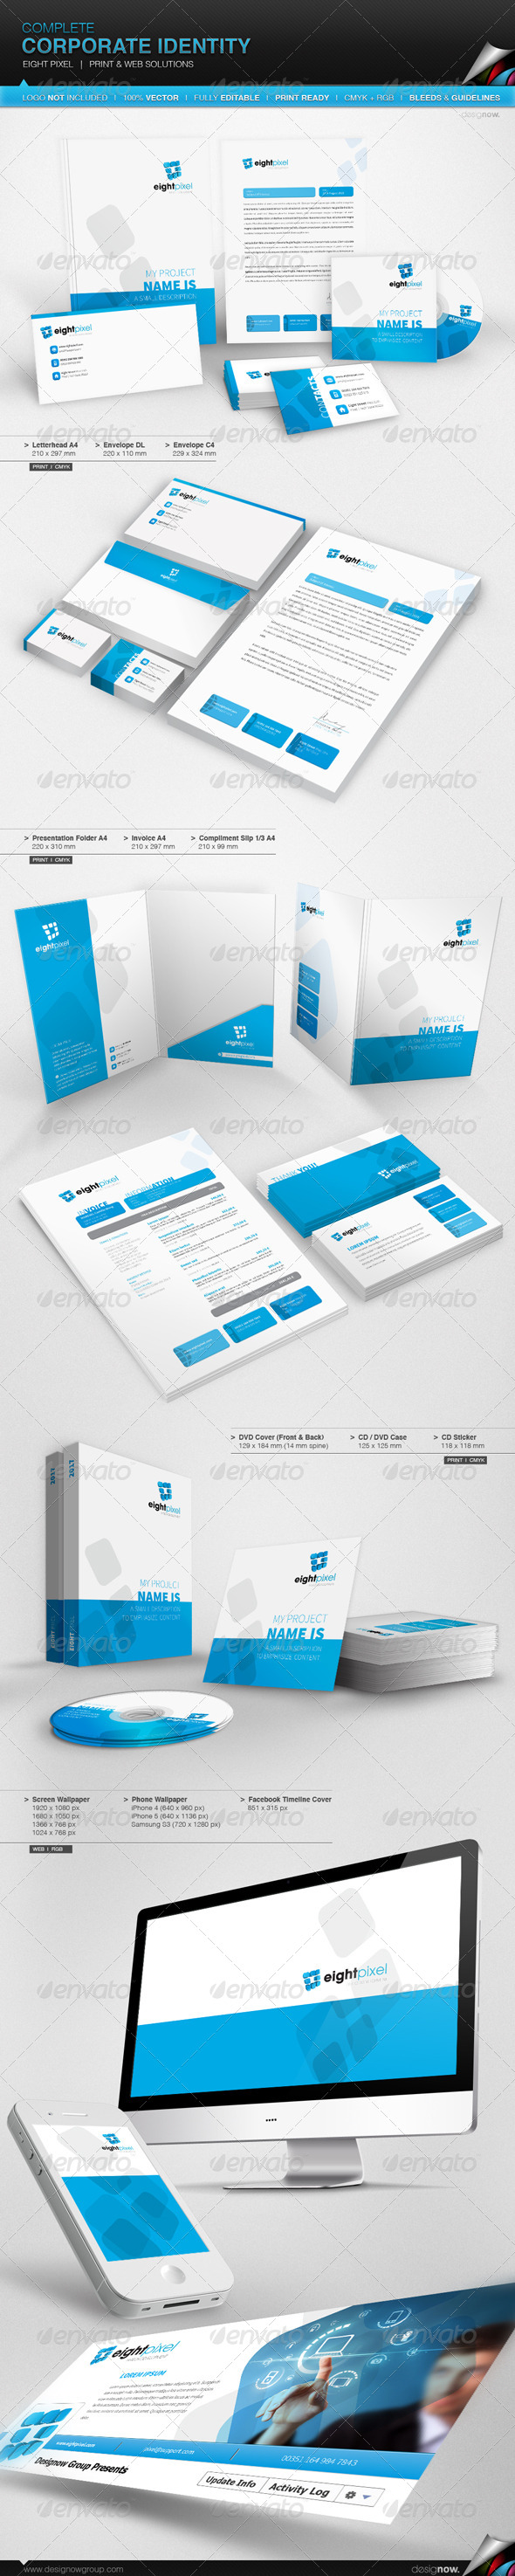 Corporate Identity - Eight Pixel - Stationery Print Templates